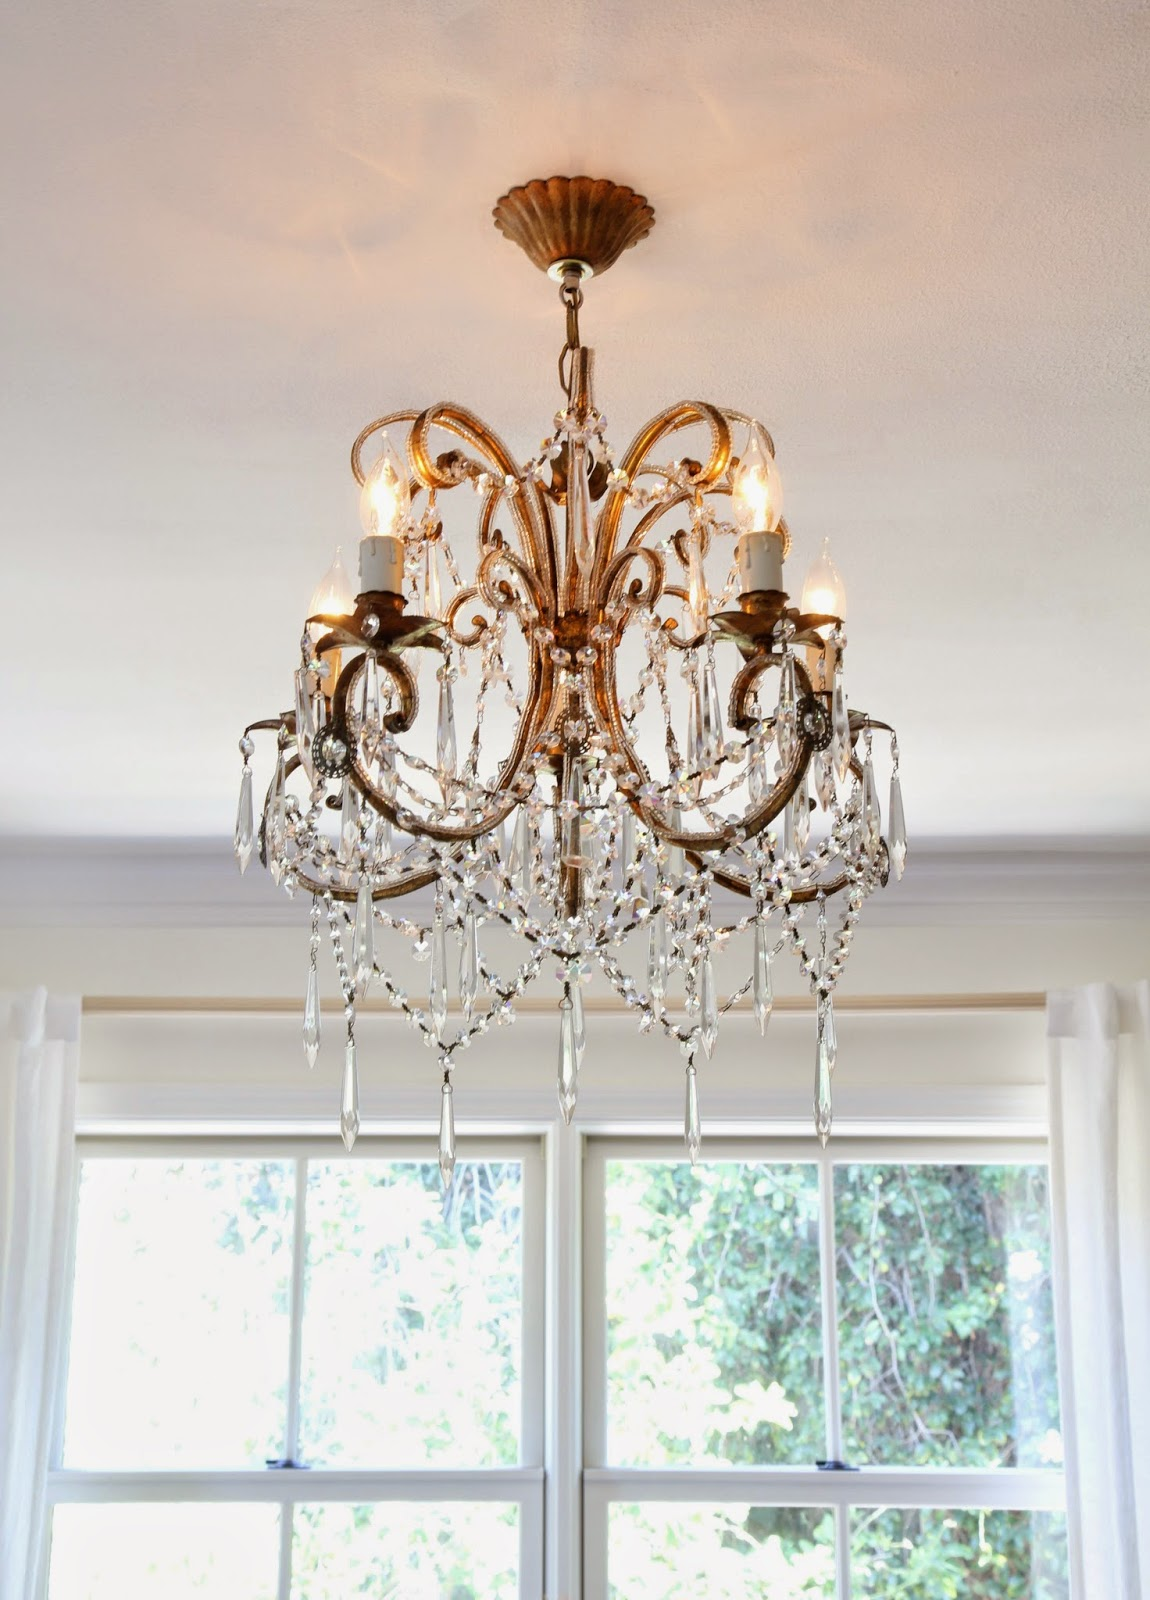 French Crystal Chandelier for the Master Bedroom; Nora's Nest